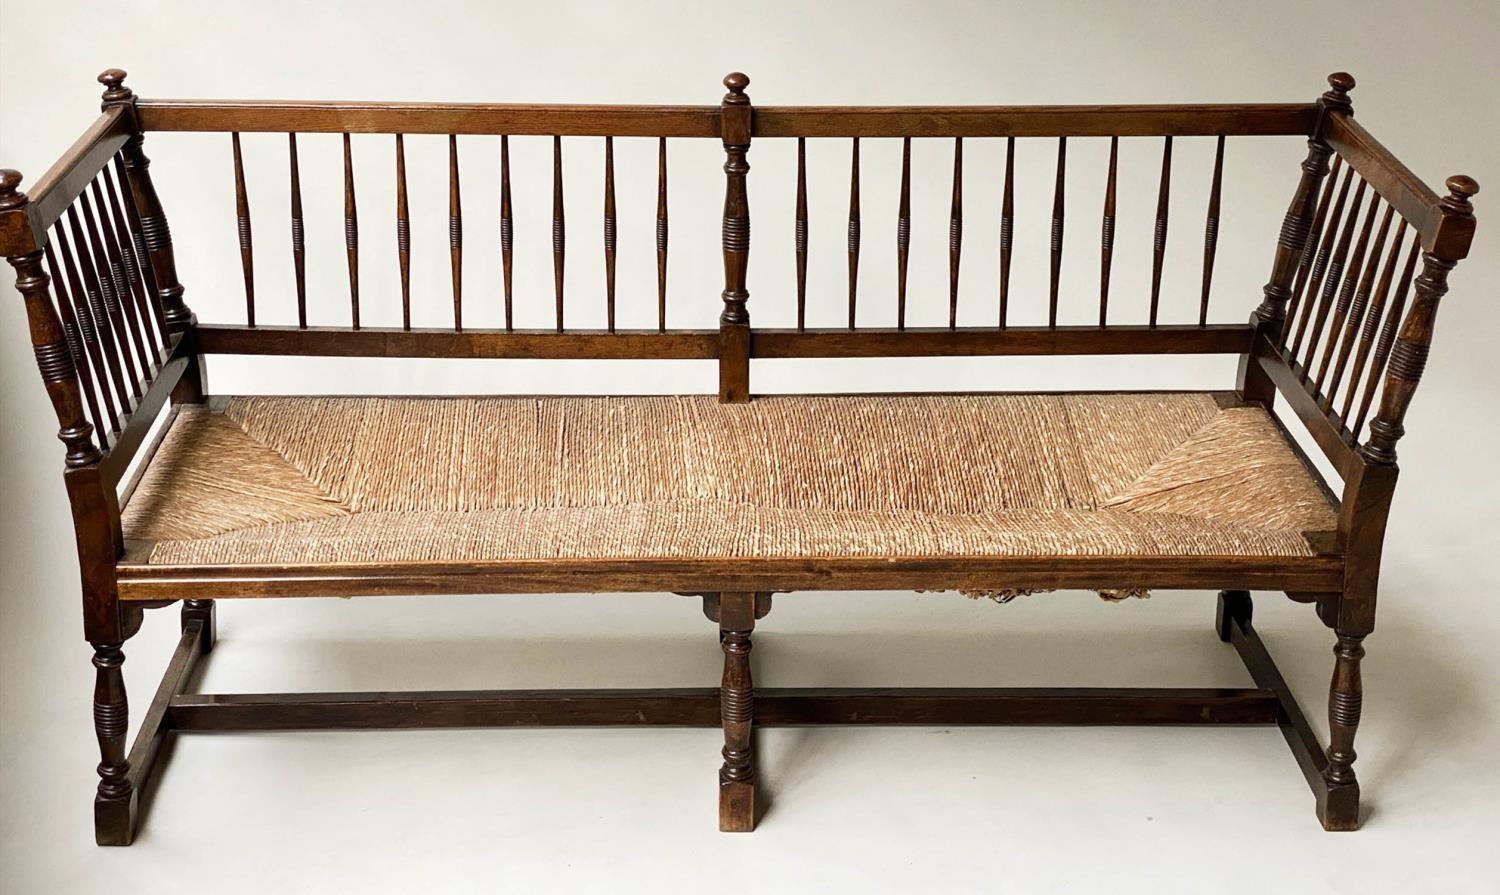 HALL BENCH, 19th century English oak with spindle back rush seat and stretchered turned supports,